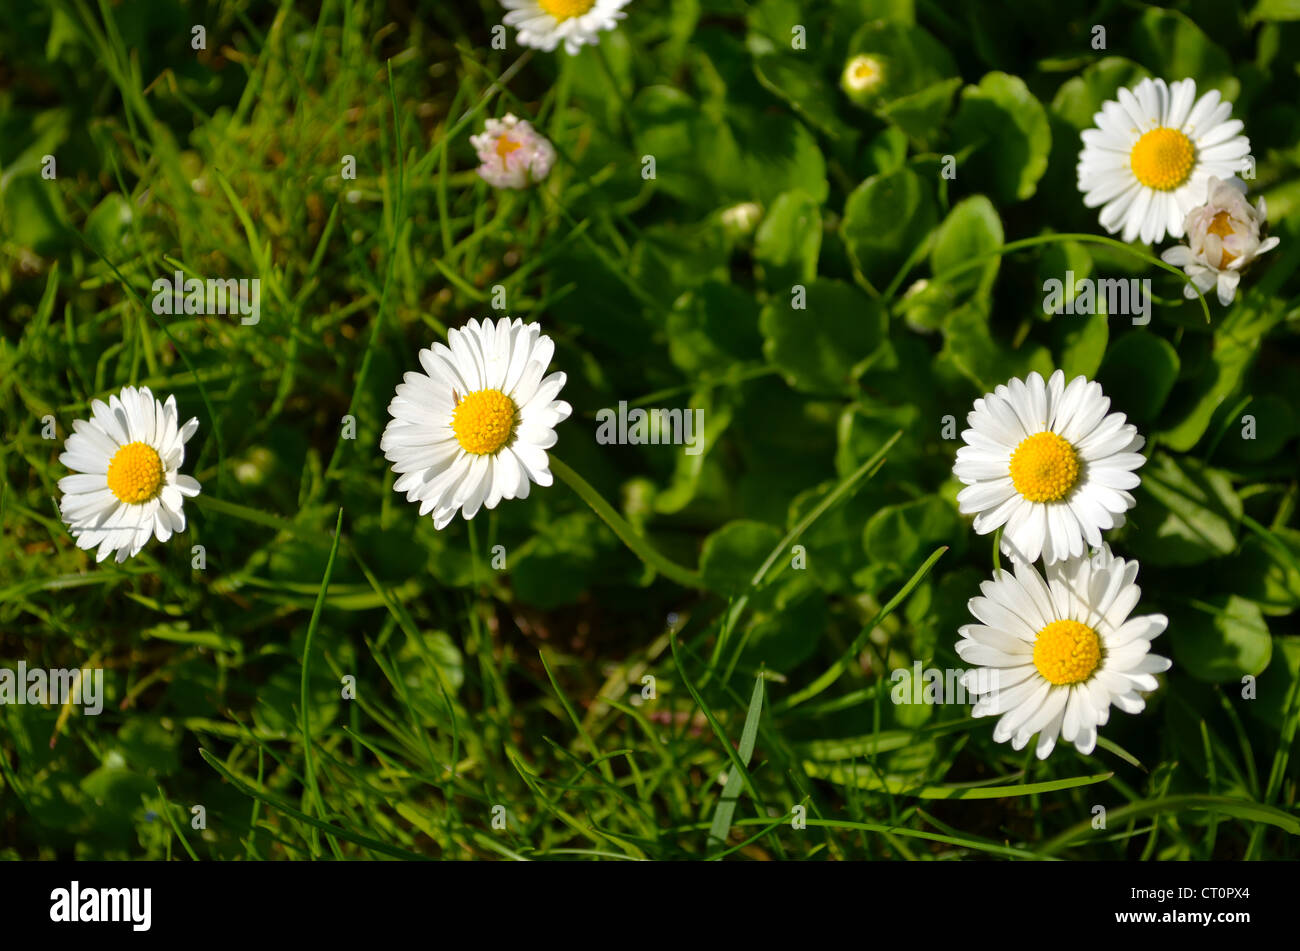 White And Yellow Daisy Like Spring Flowers Stock Photos White And